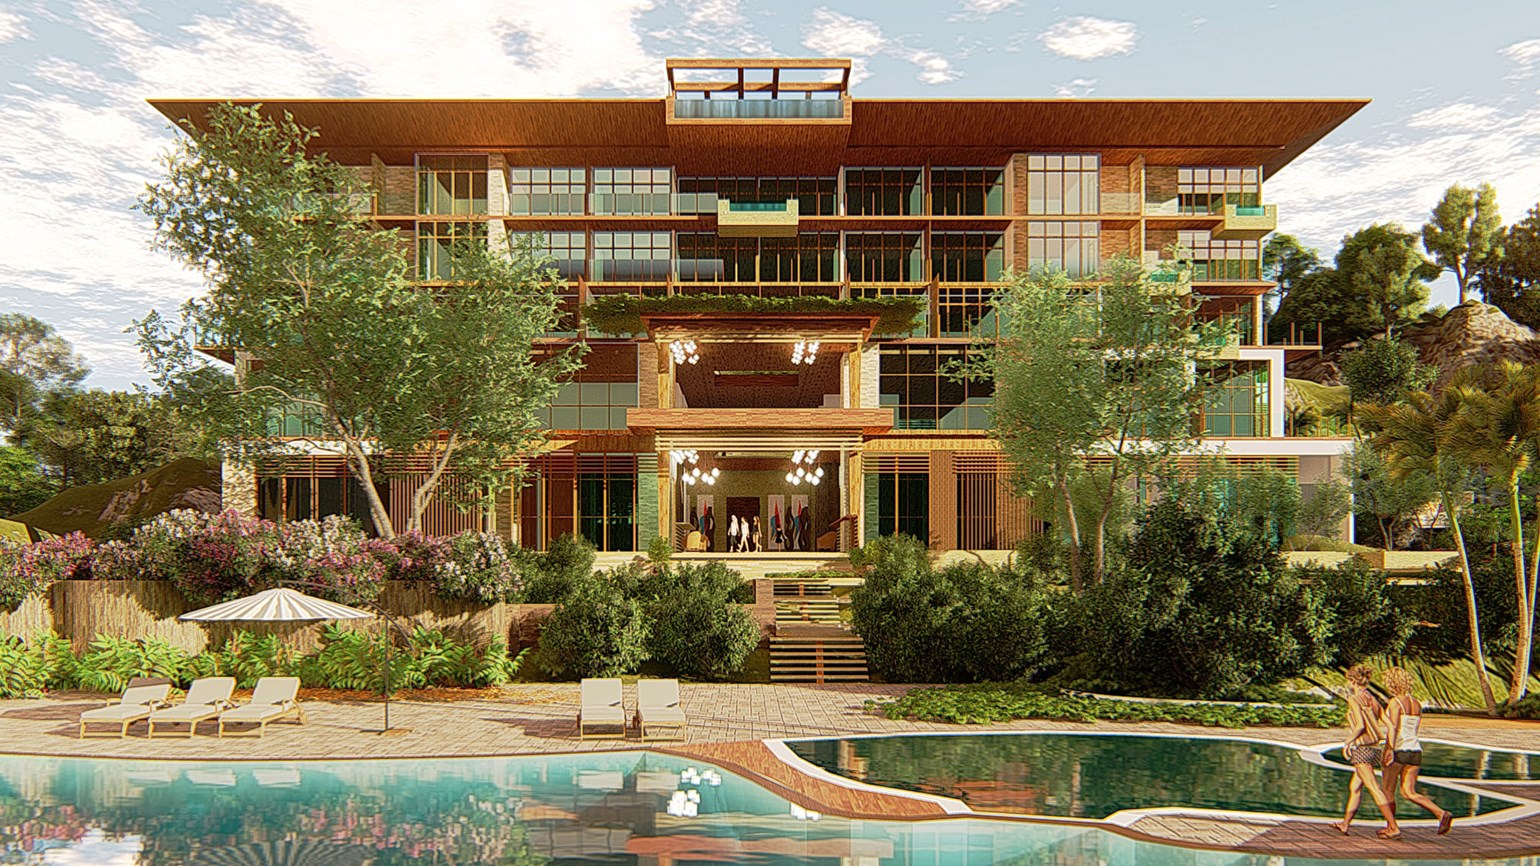 Kimpton to operate Roatan resort